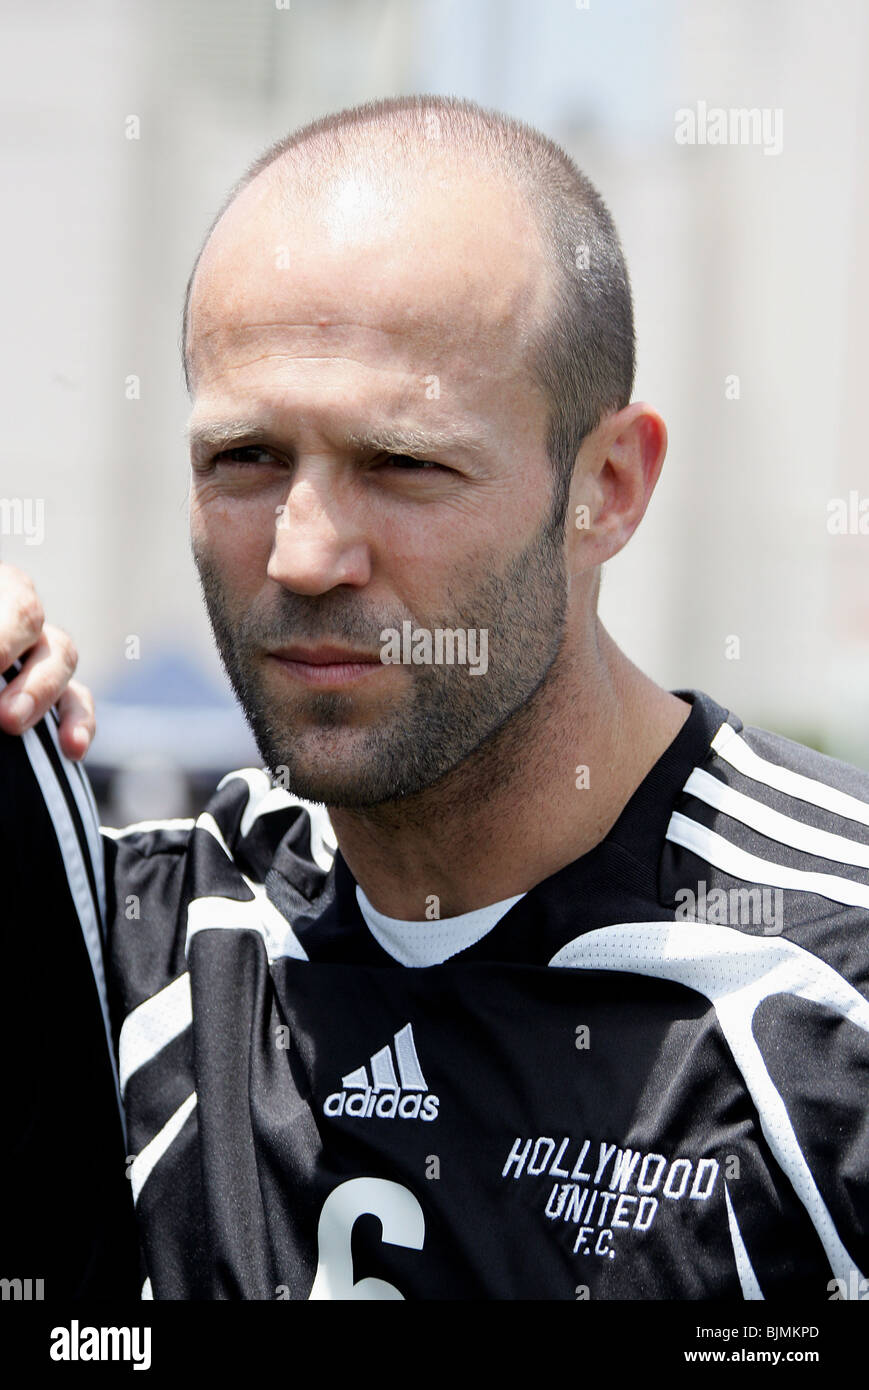 JASON STATHAM SOCCER FOR SURVIVORS HOLLYWOOD UNITED CHARITY FOOTBALL MATCH BEVERLY HILLS HIGH SCHOOL BEVERLY HILLS - Stock Image